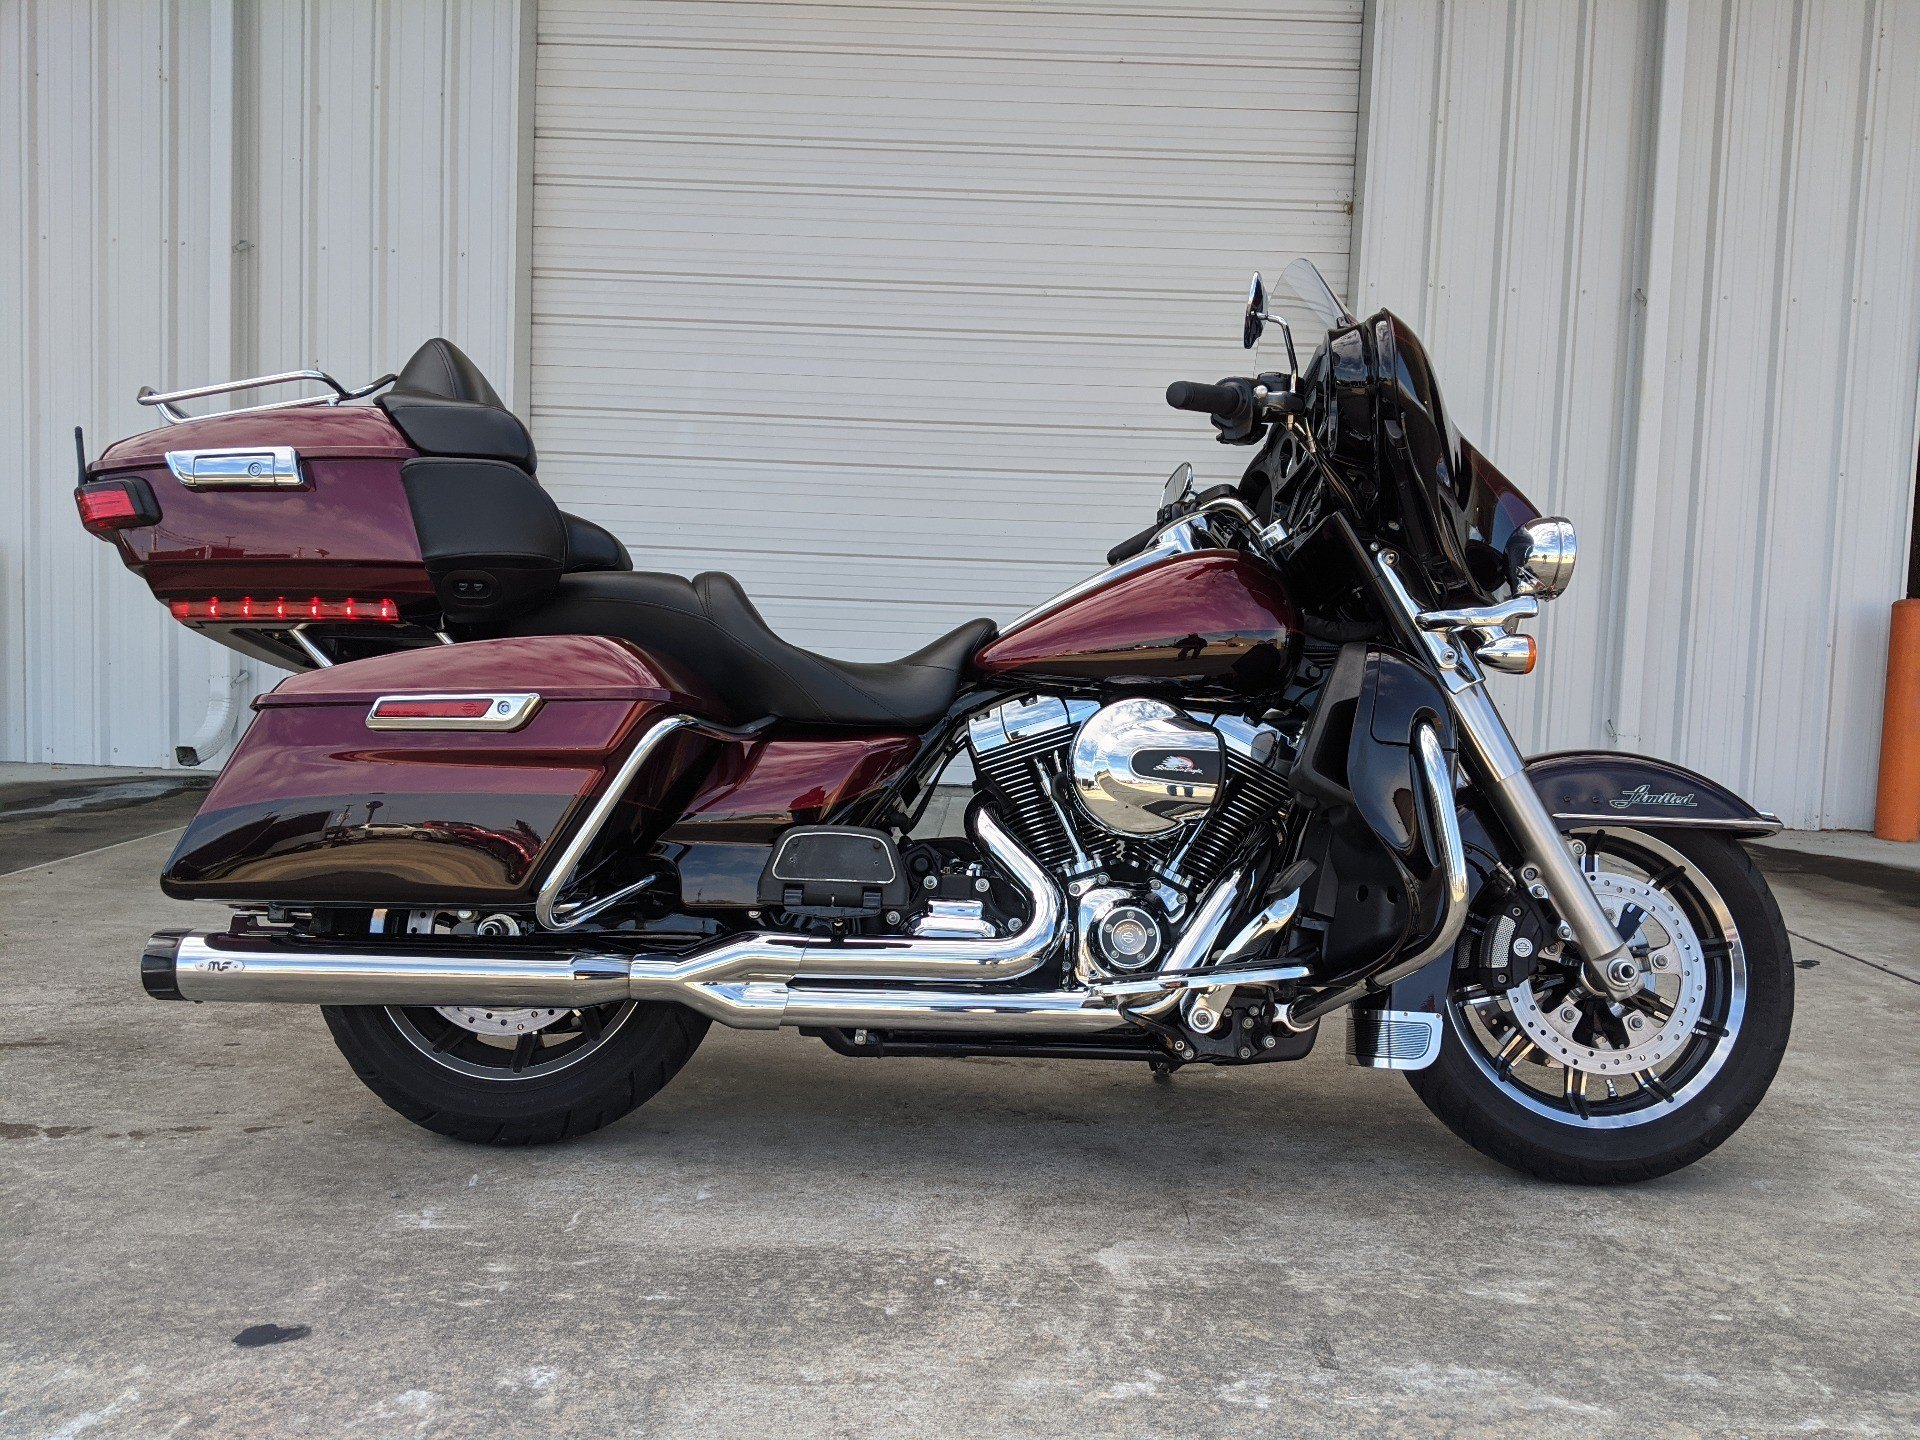 2015 Harley-Davidson Ultra Limited in Monroe, Louisiana - Photo 1